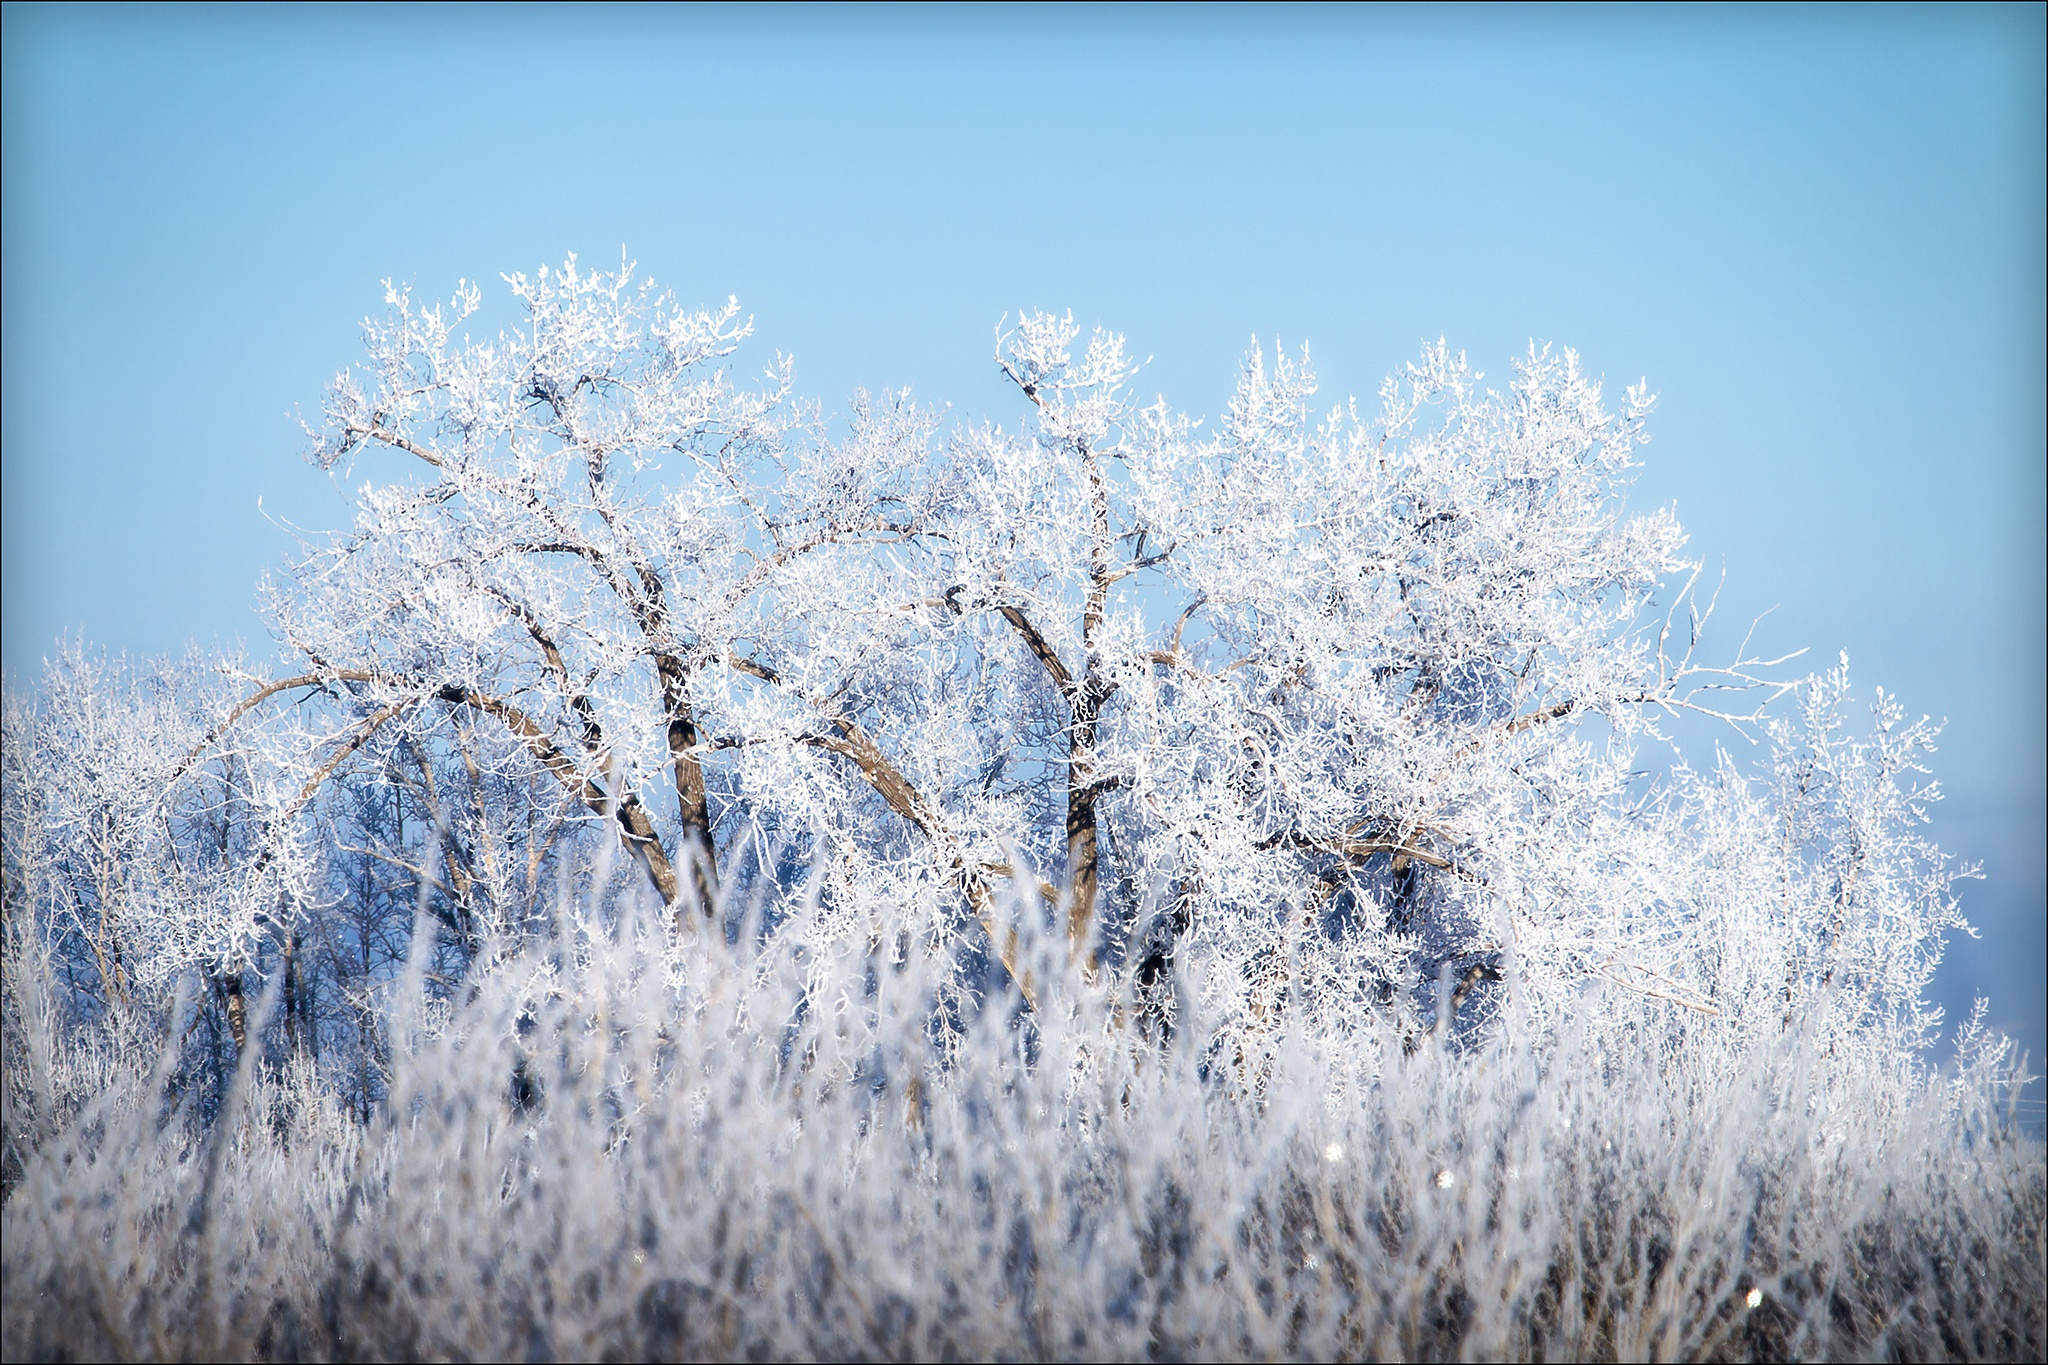 Frosty Morning by Behrfeet